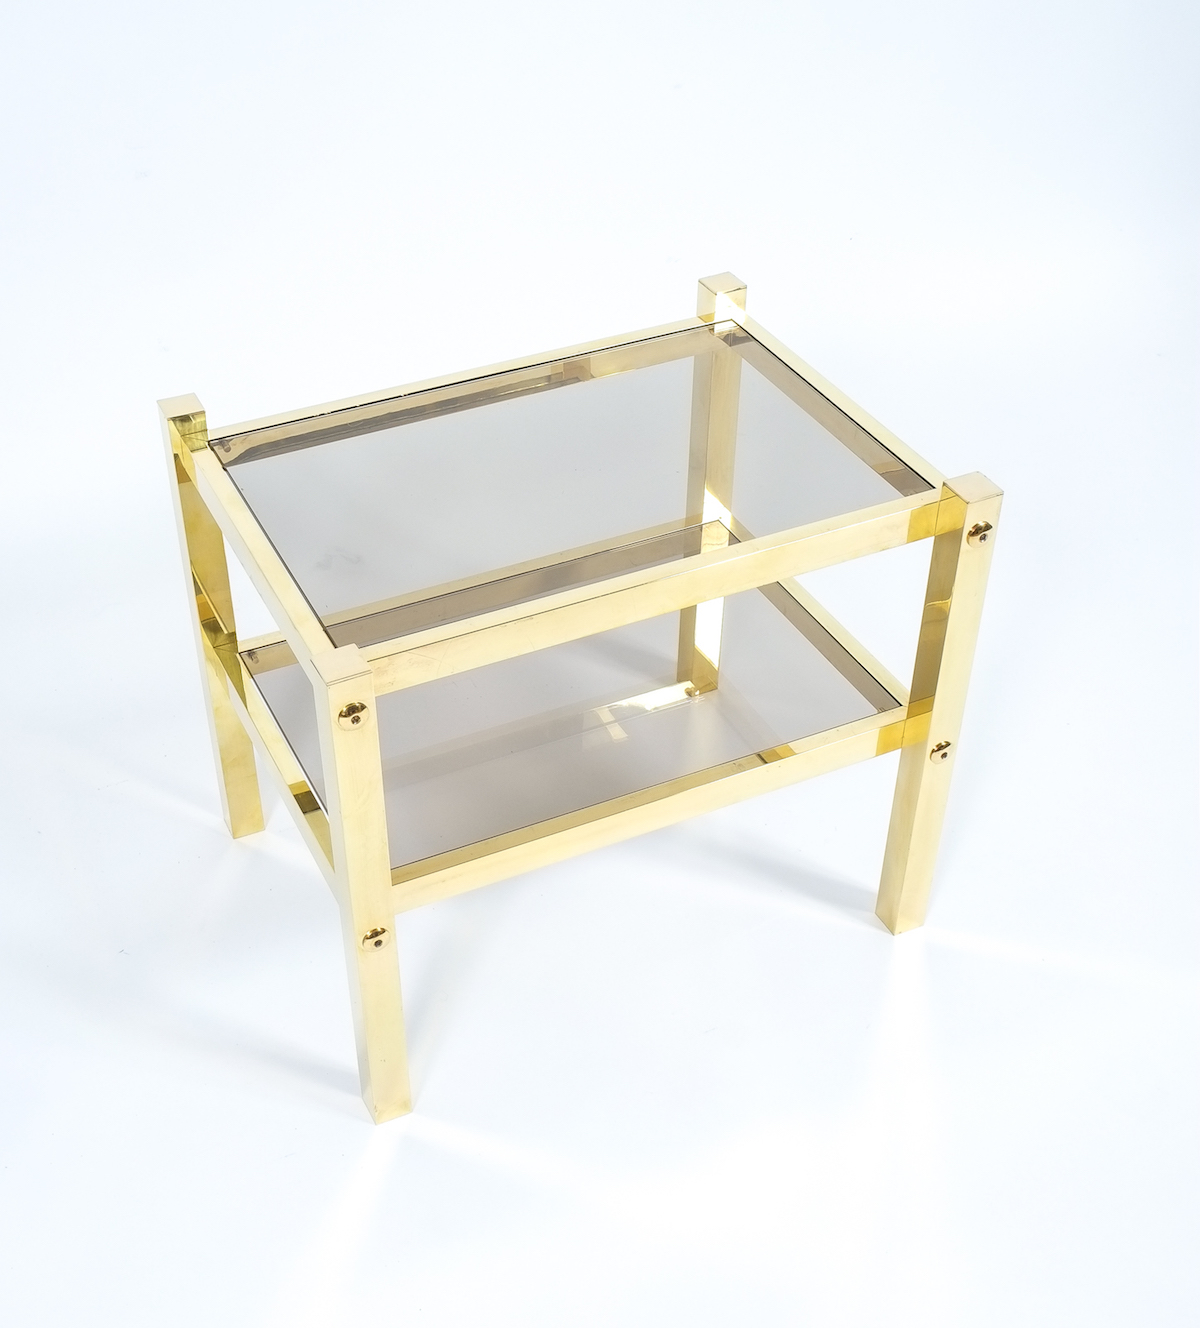 4 Small Brass Side Table